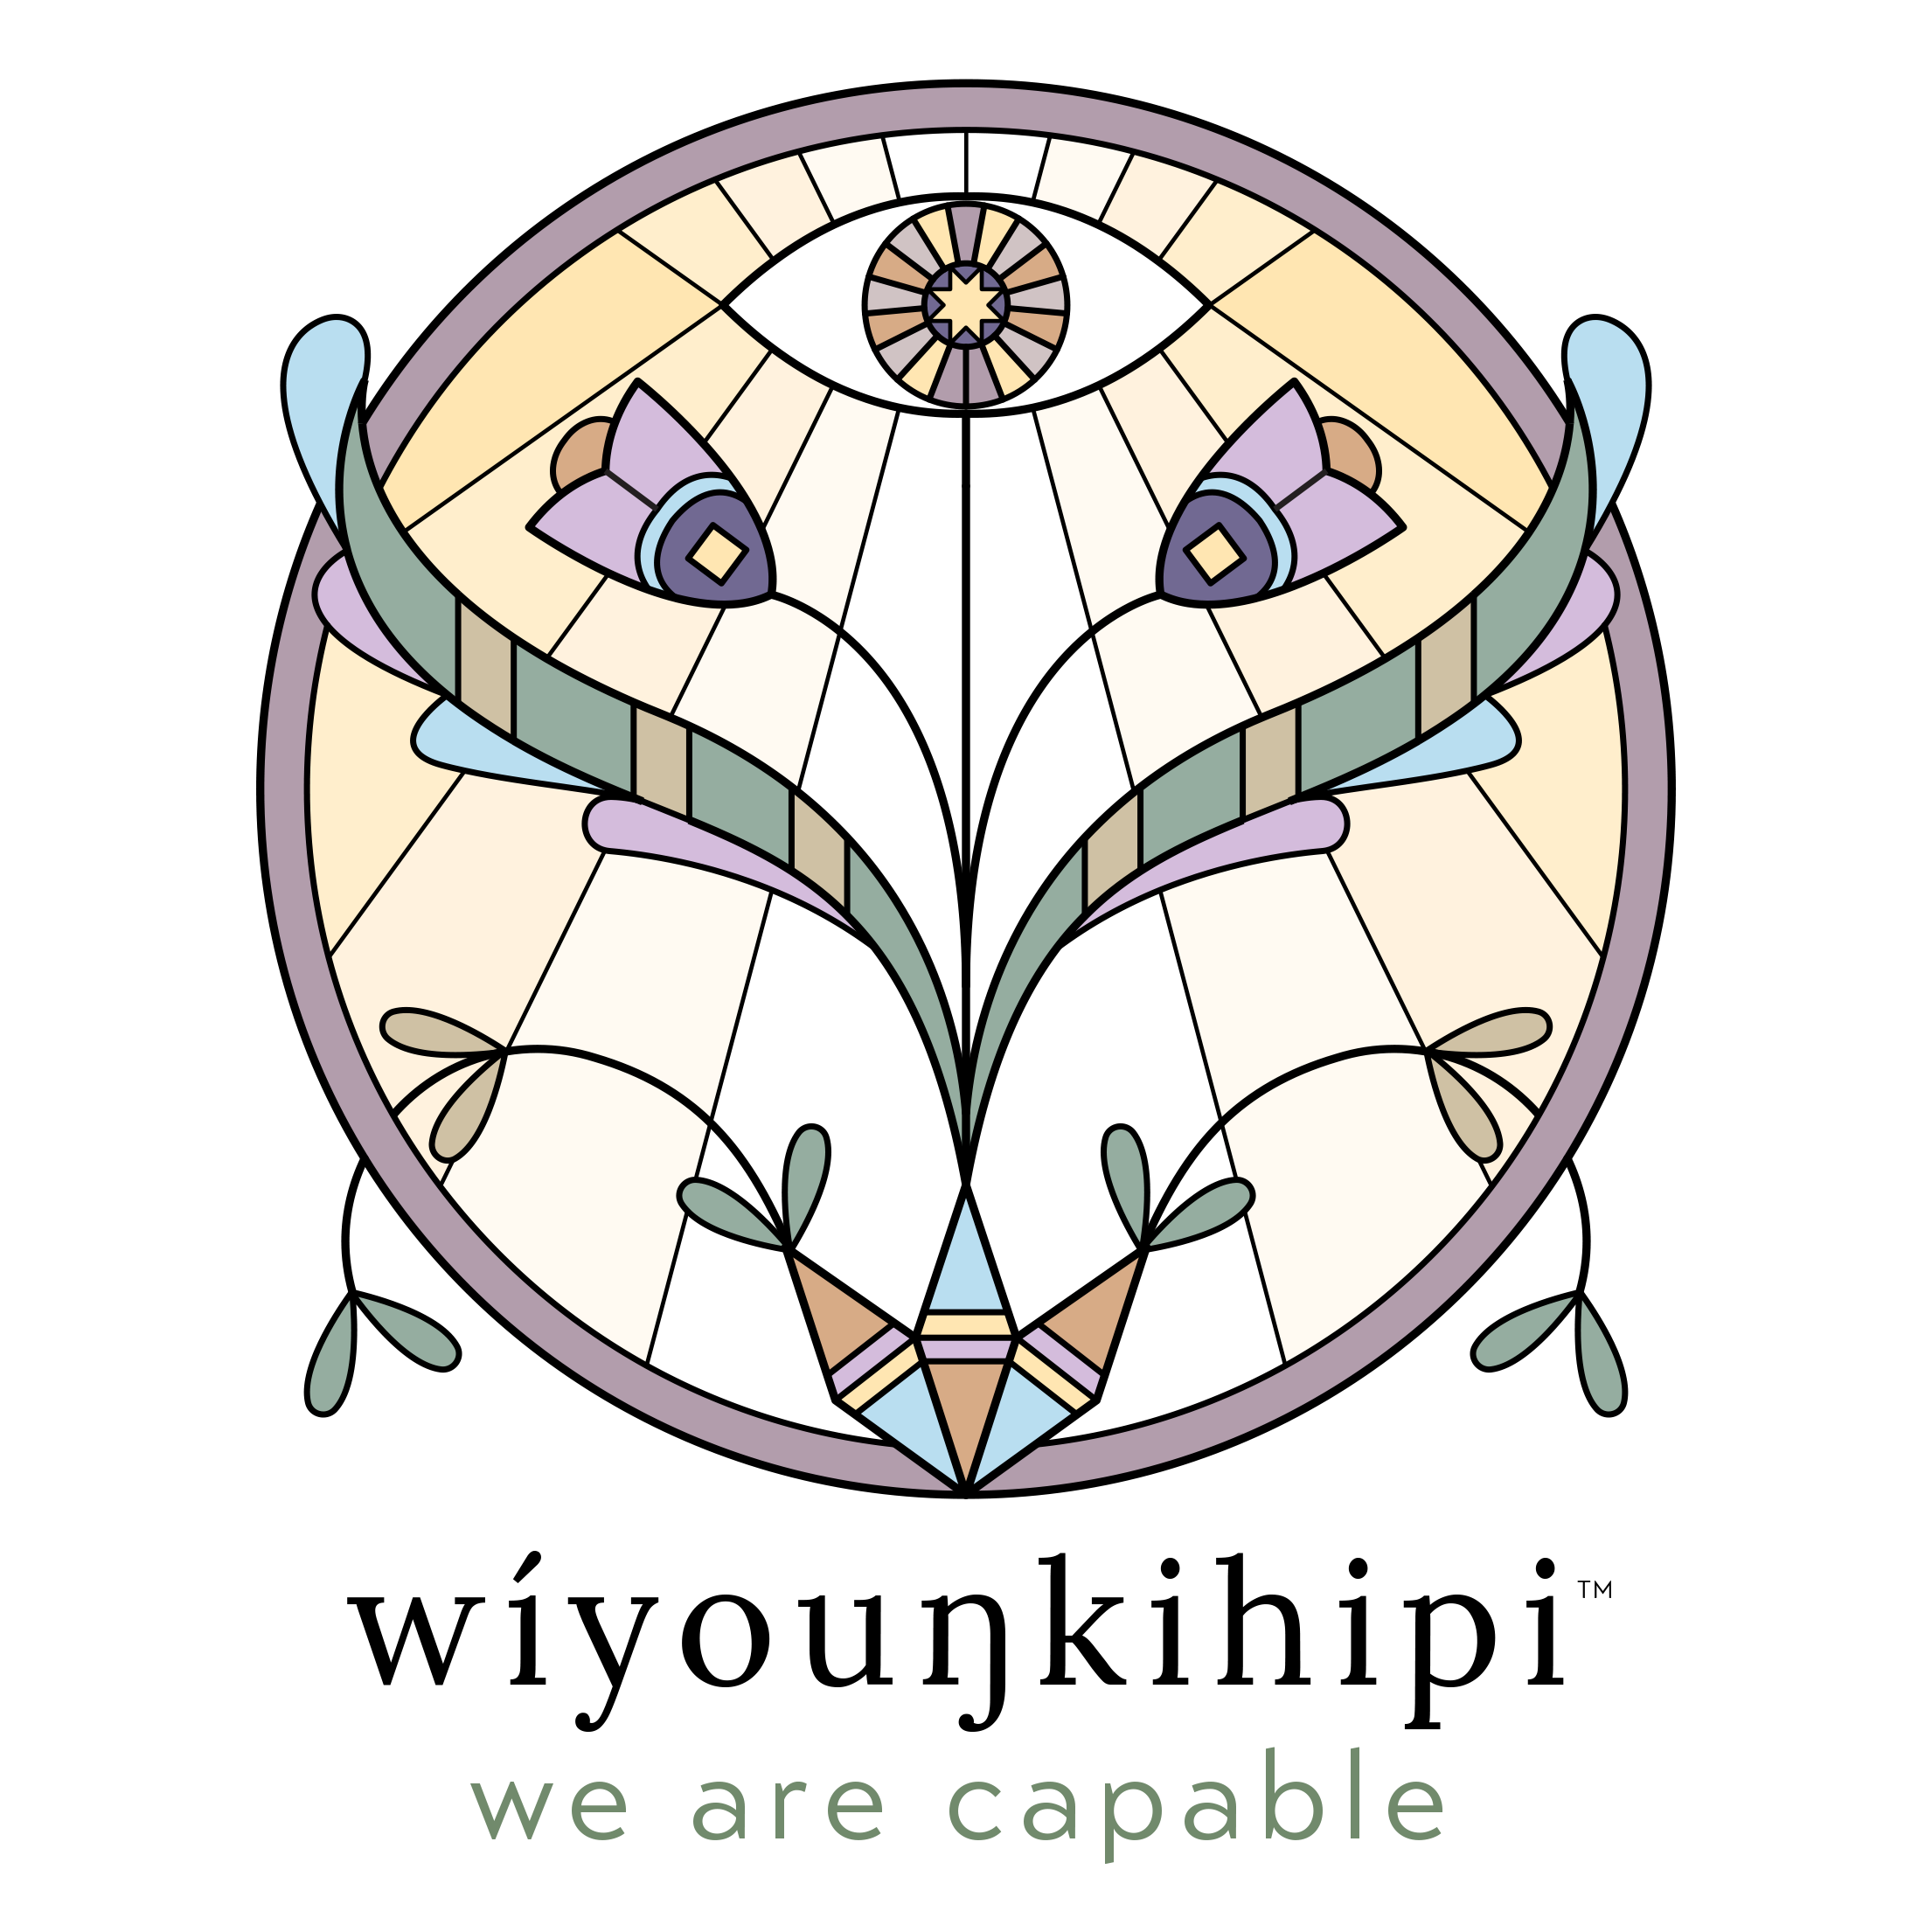 Wiyounkihipi Productions | We Are Capable